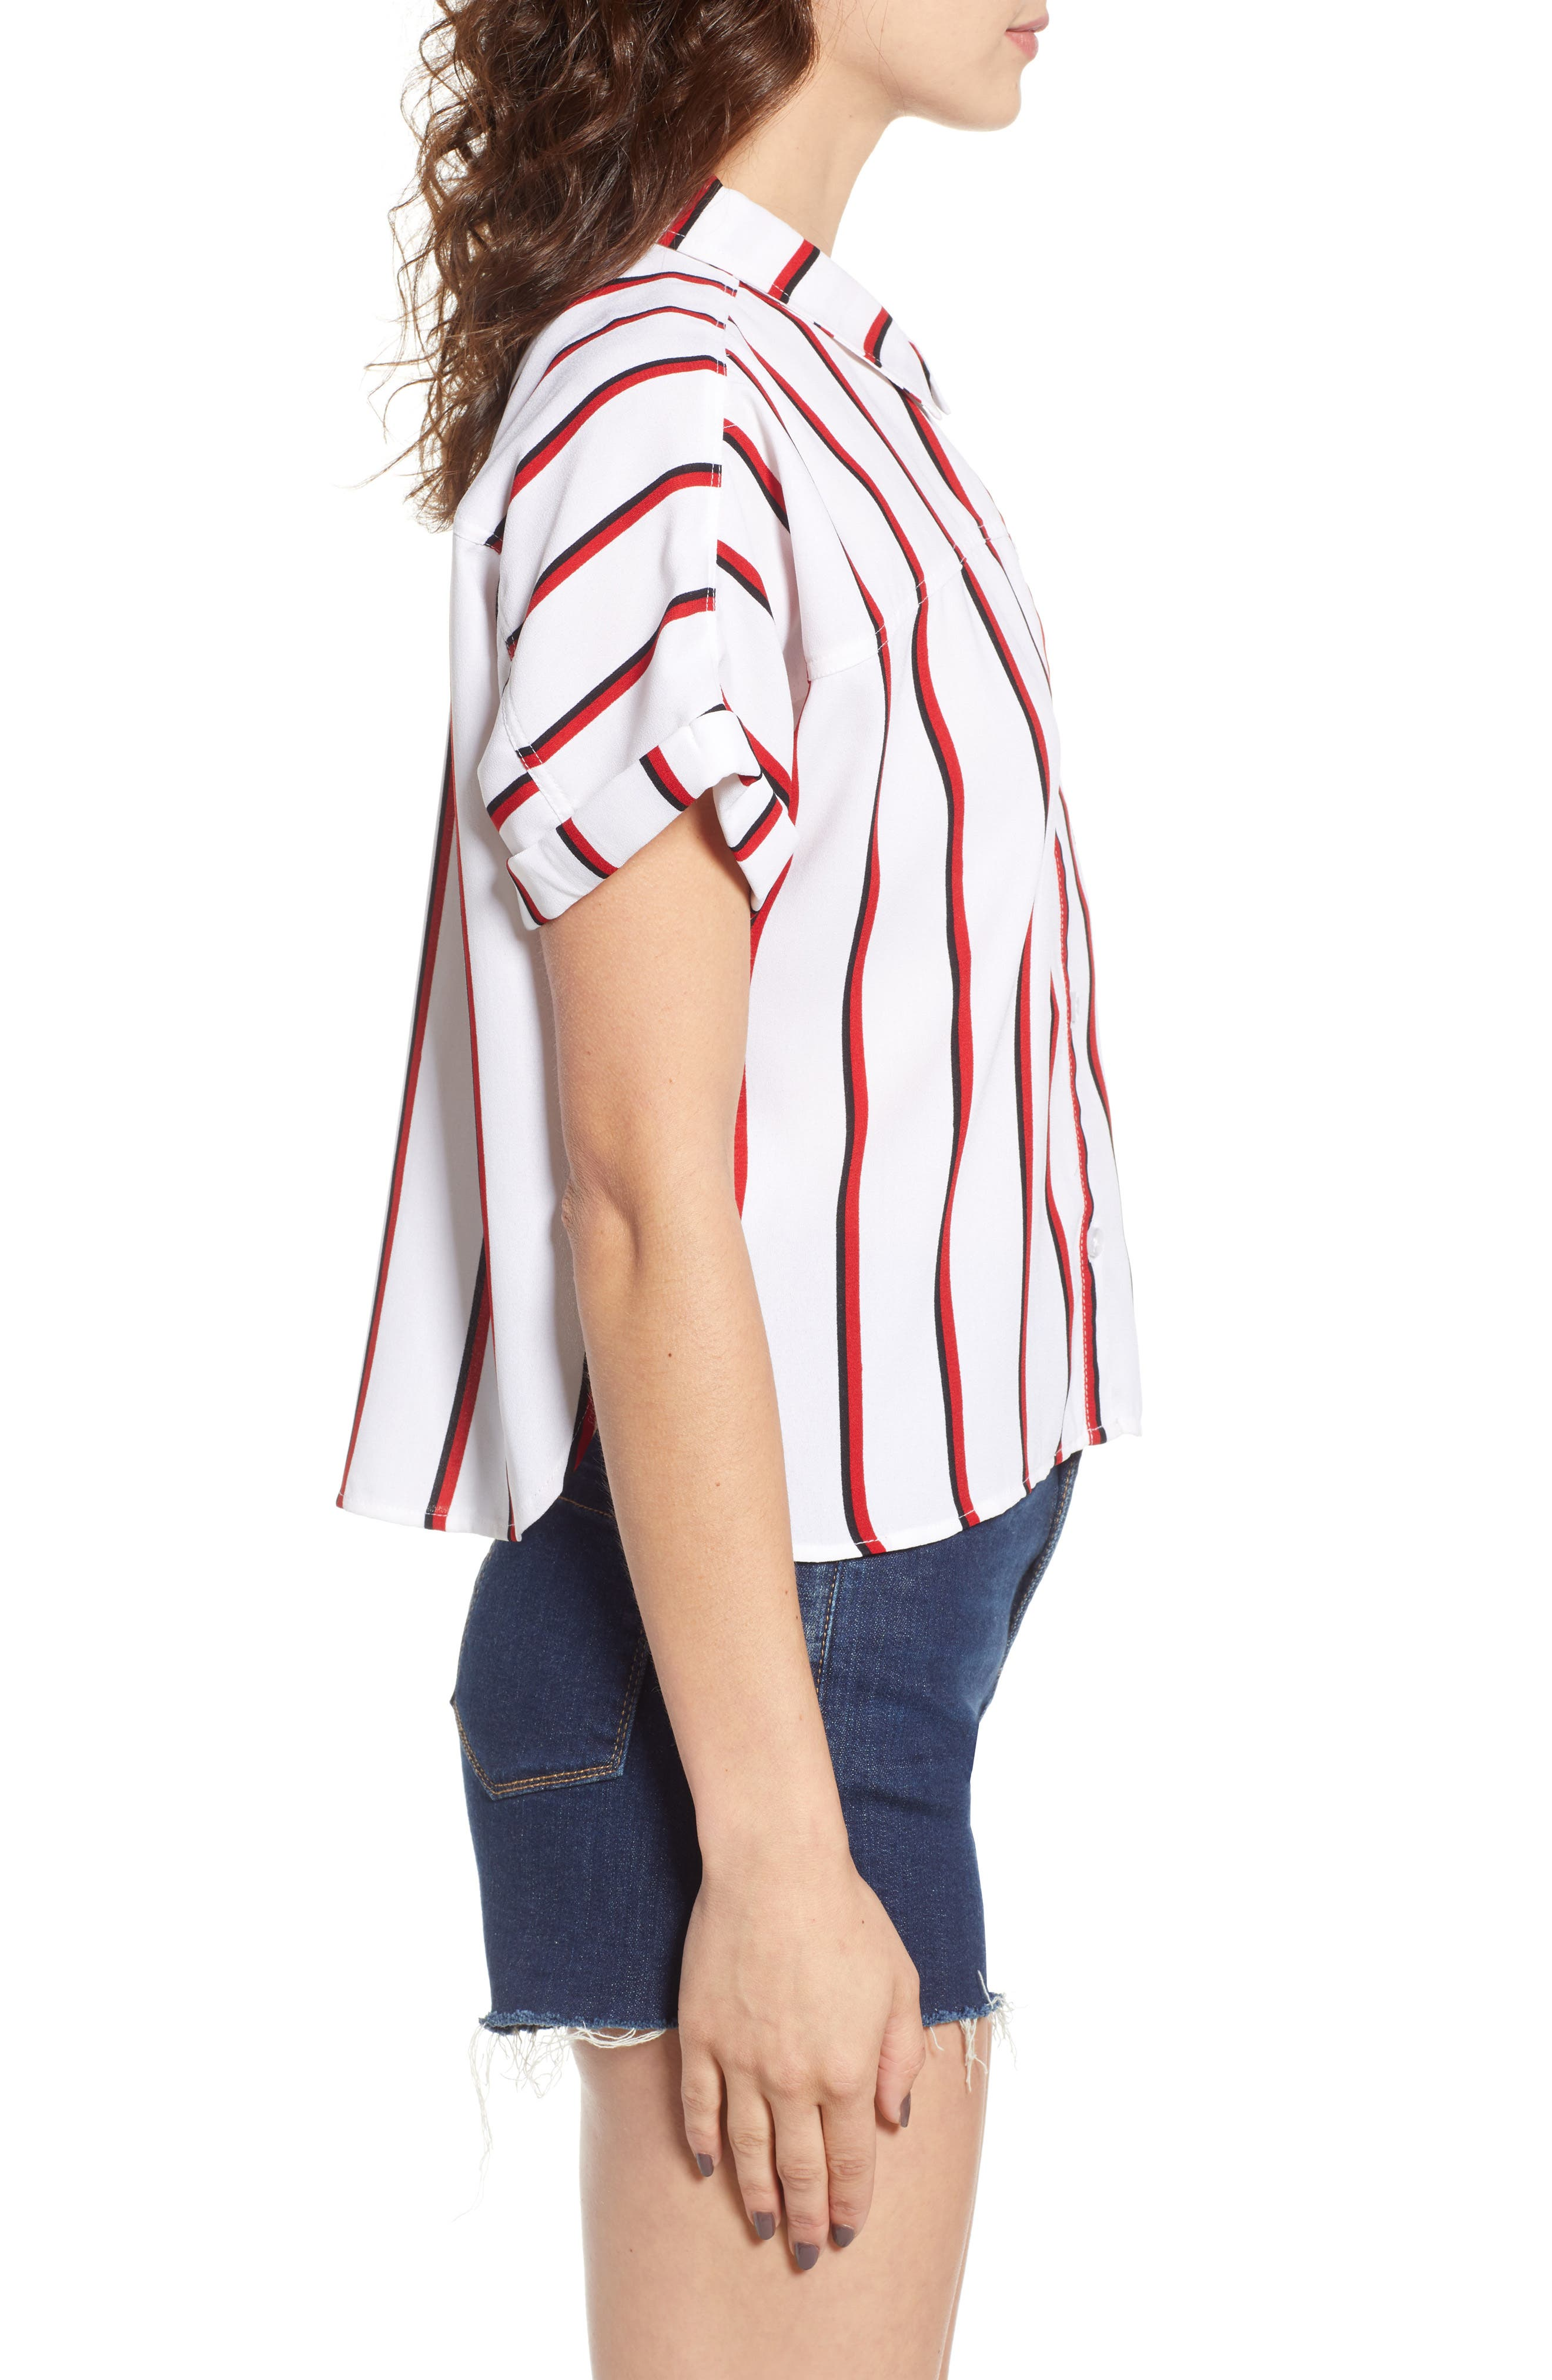 Counting Moons Stripe Top,                             Alternate thumbnail 3, color,                             600